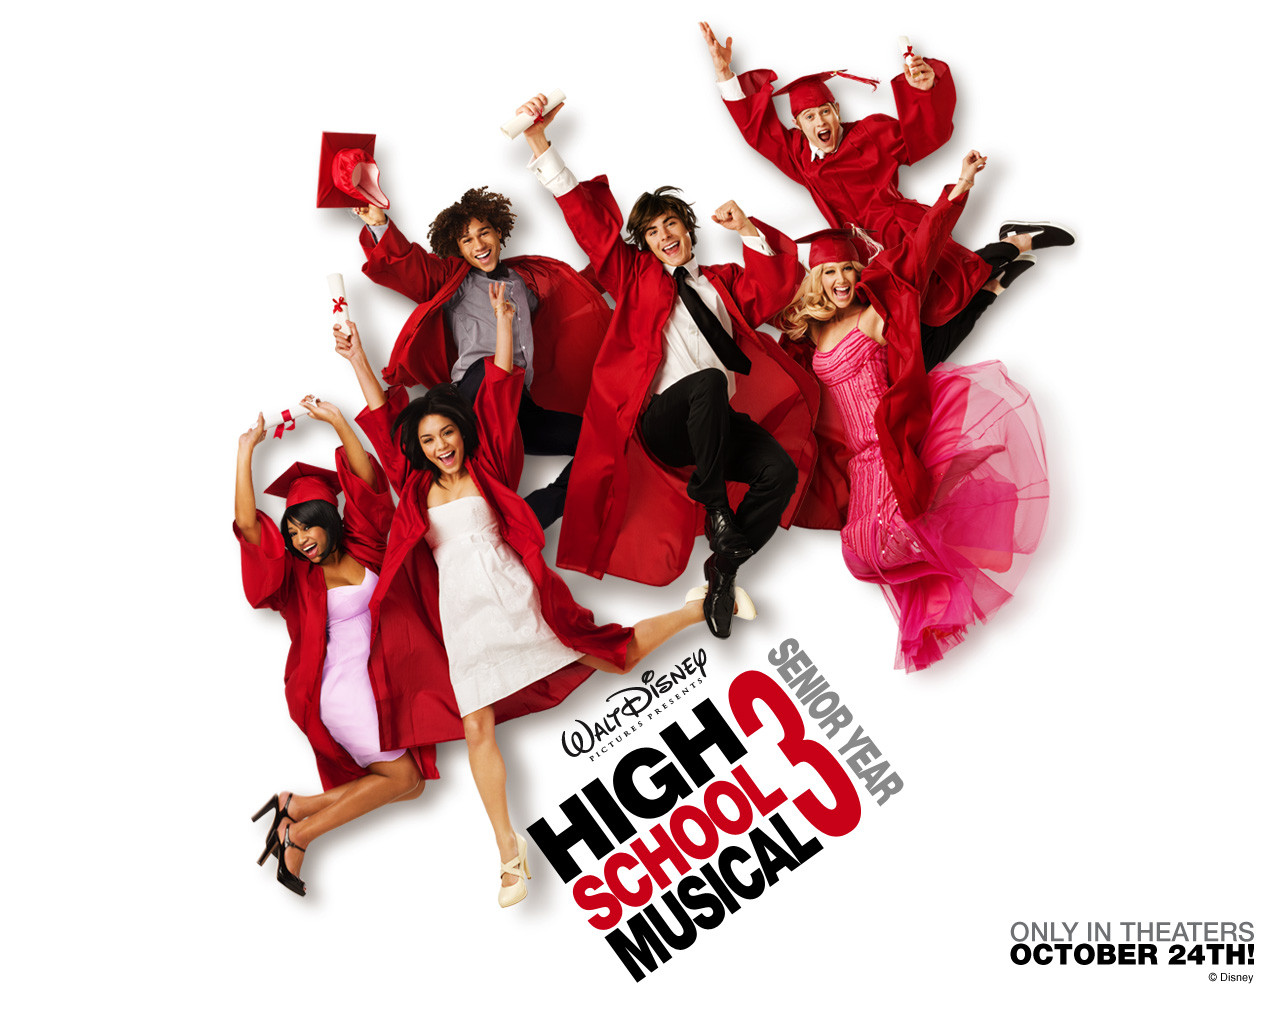 Musicals w/ Cheese - High School Musical 3 (Commentary)